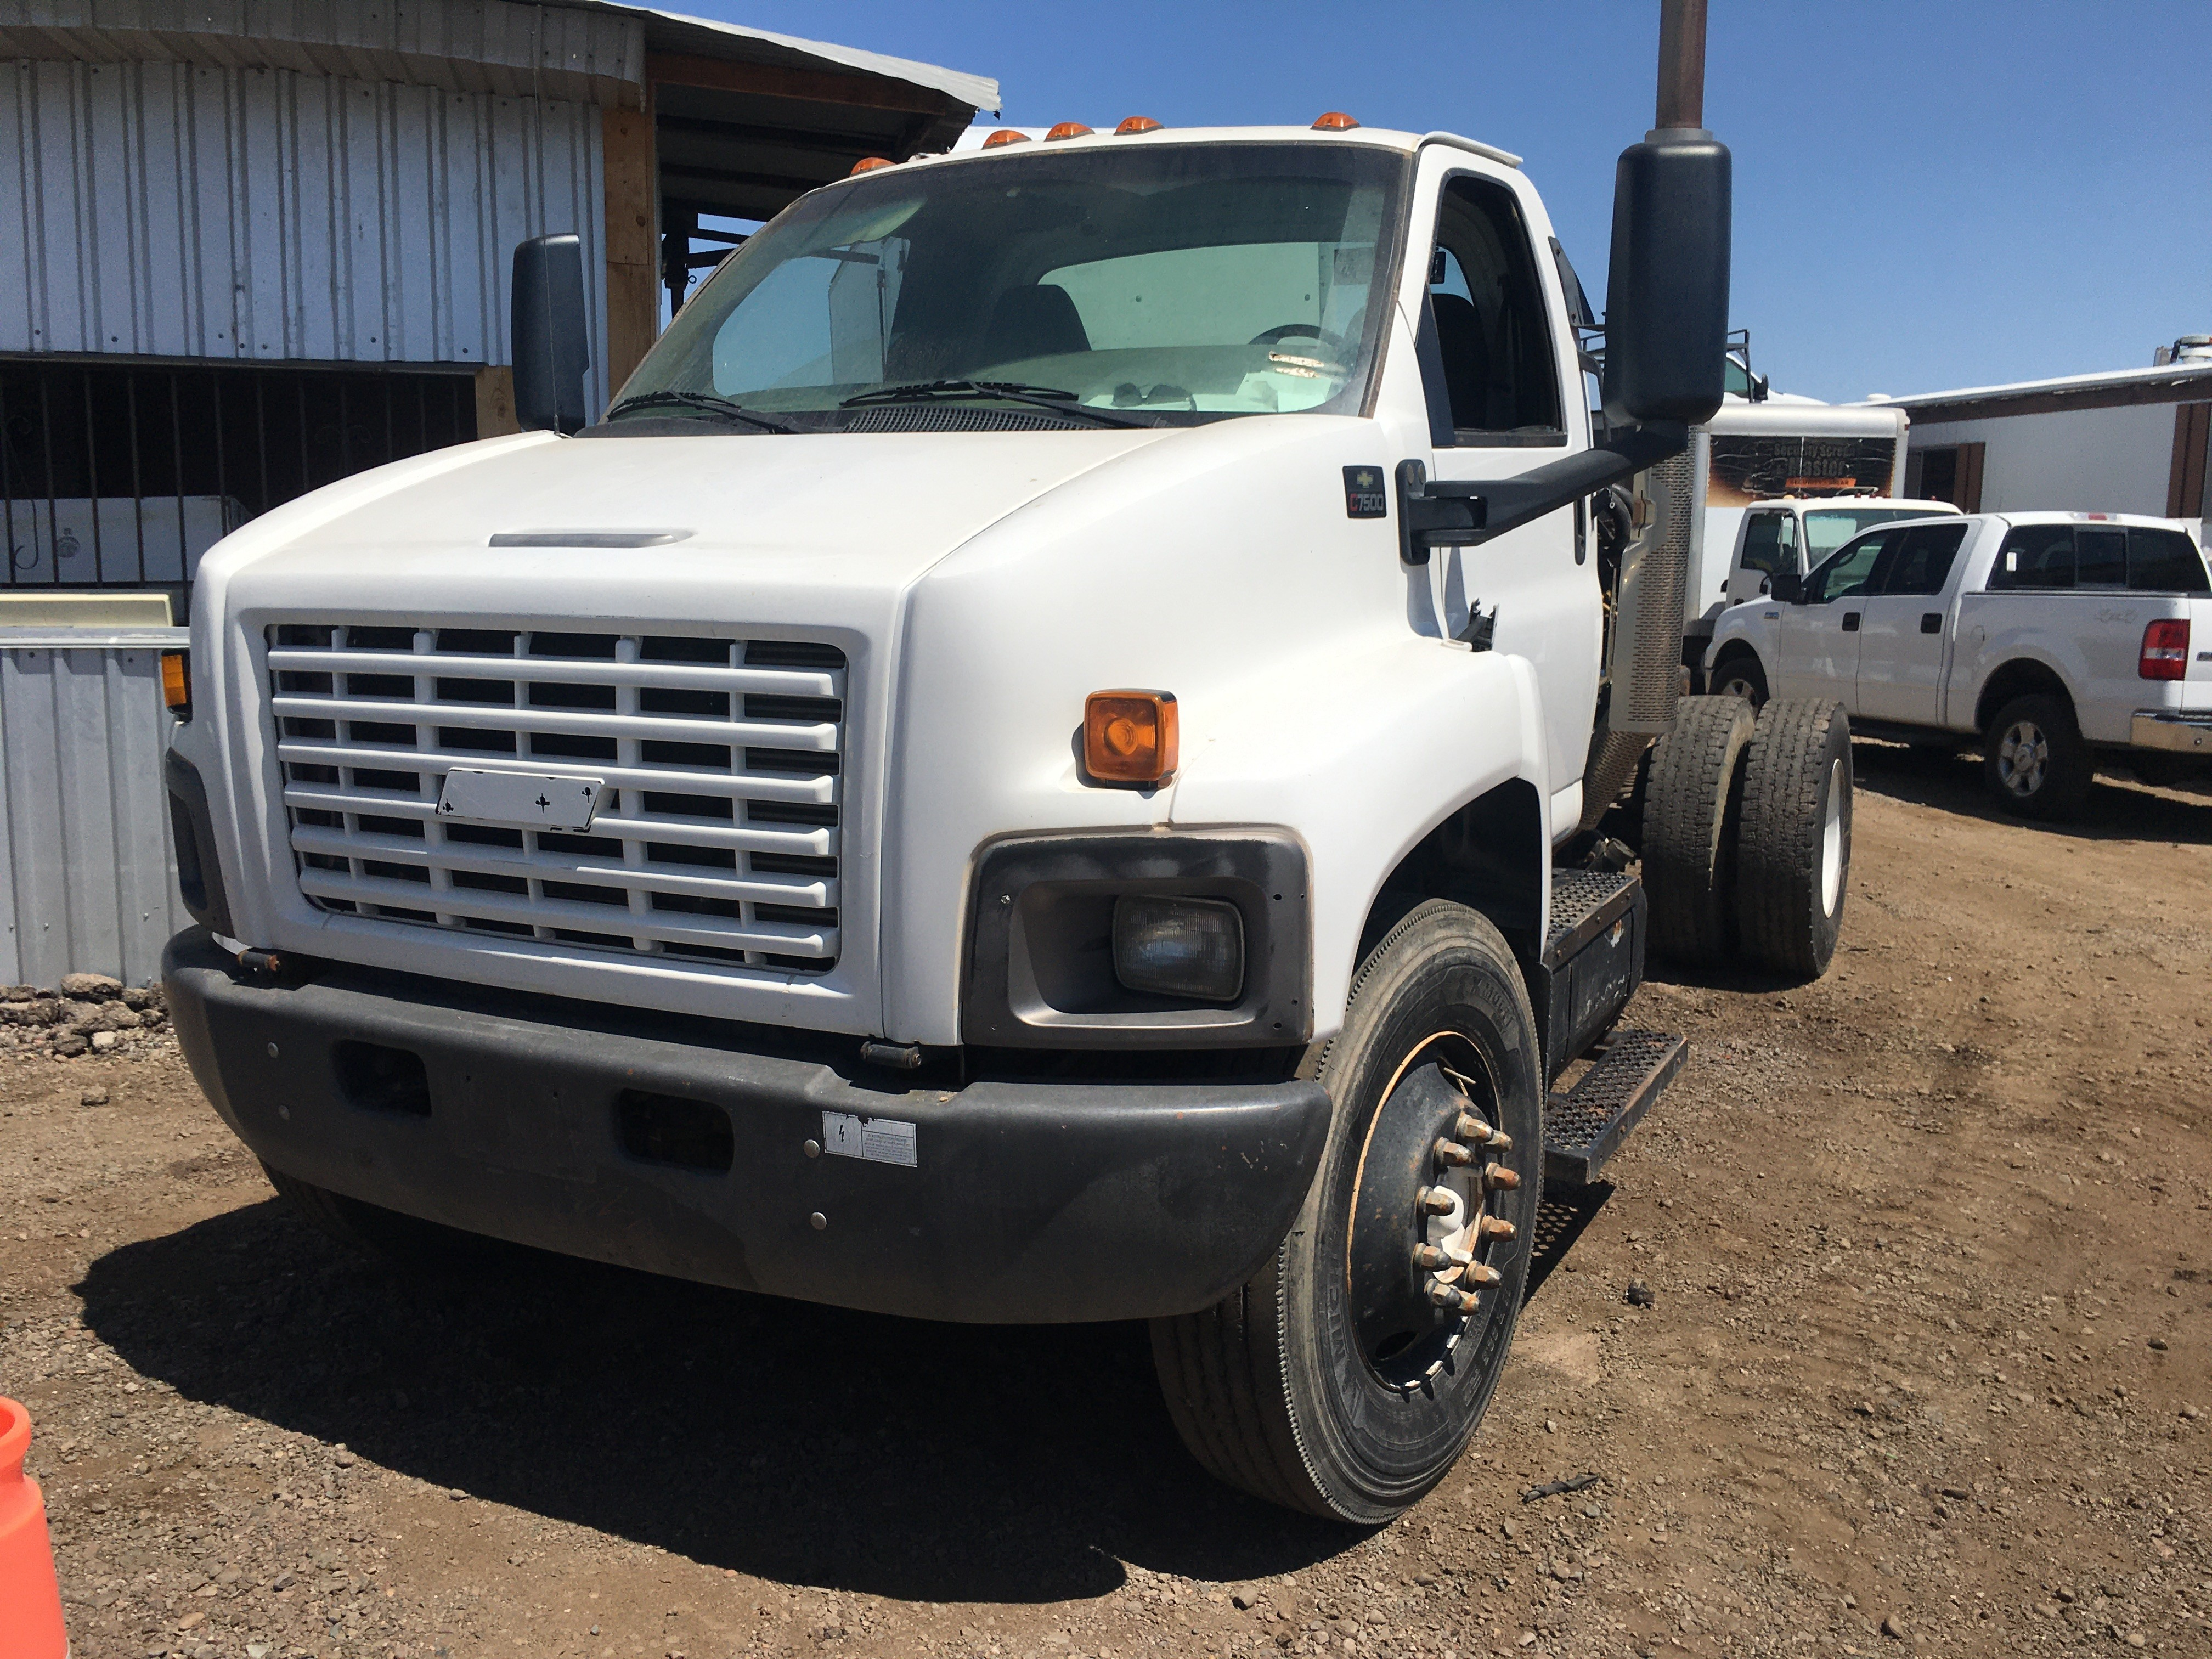 Used, 2008, Chevrolet, C7500, Cab / Chassis Trucks